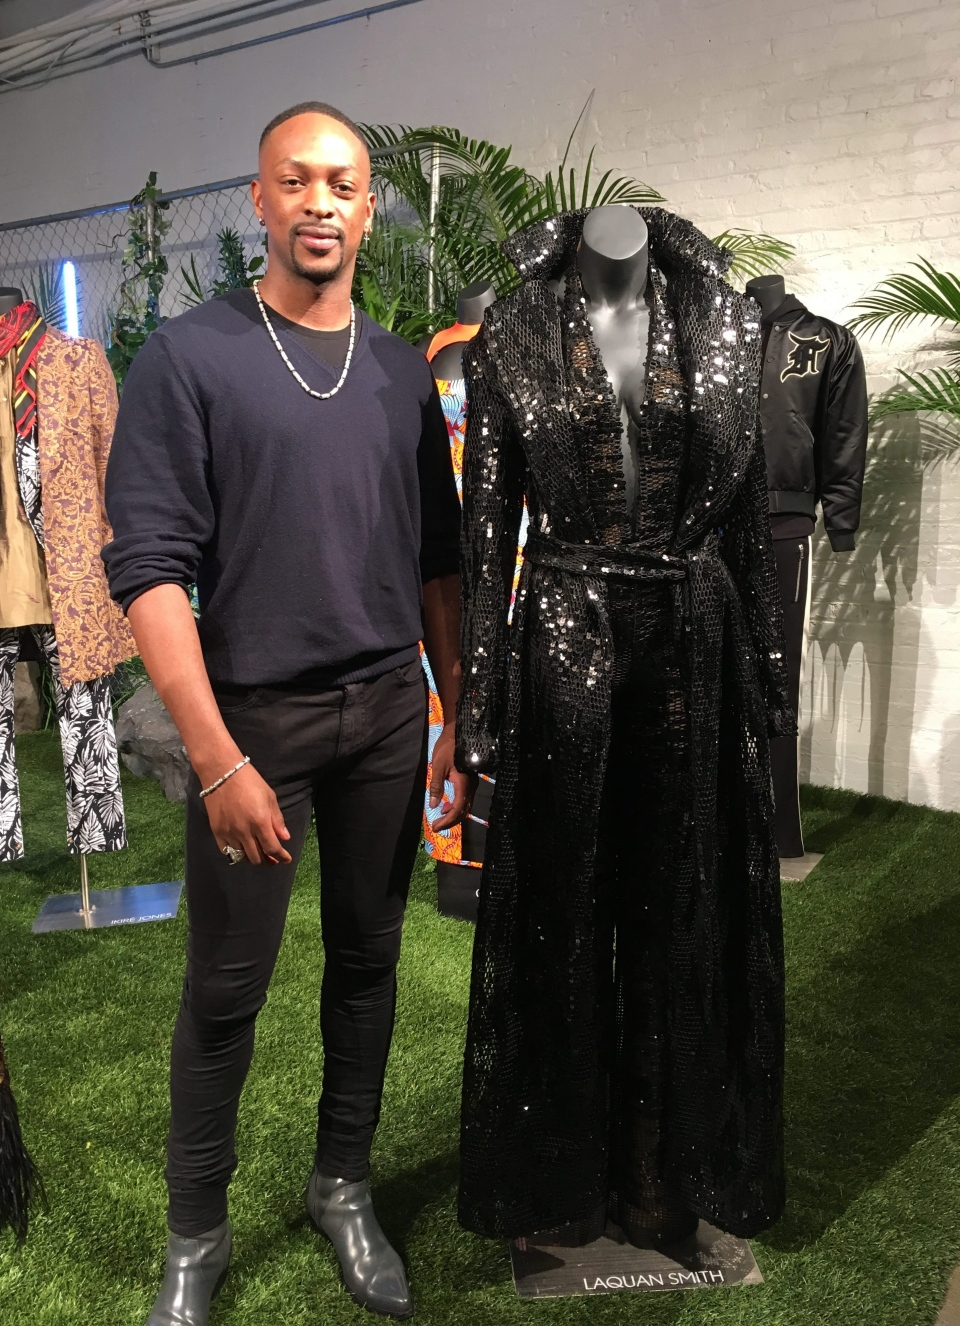 Fashion designer LaQuan Smith stands with his jumpsuit and trench coat created for a small collection inspired by the film 'Black Panther' on Monday, Feb. 12, 2018 in New York.  (AP Photo/Leanne Italie)